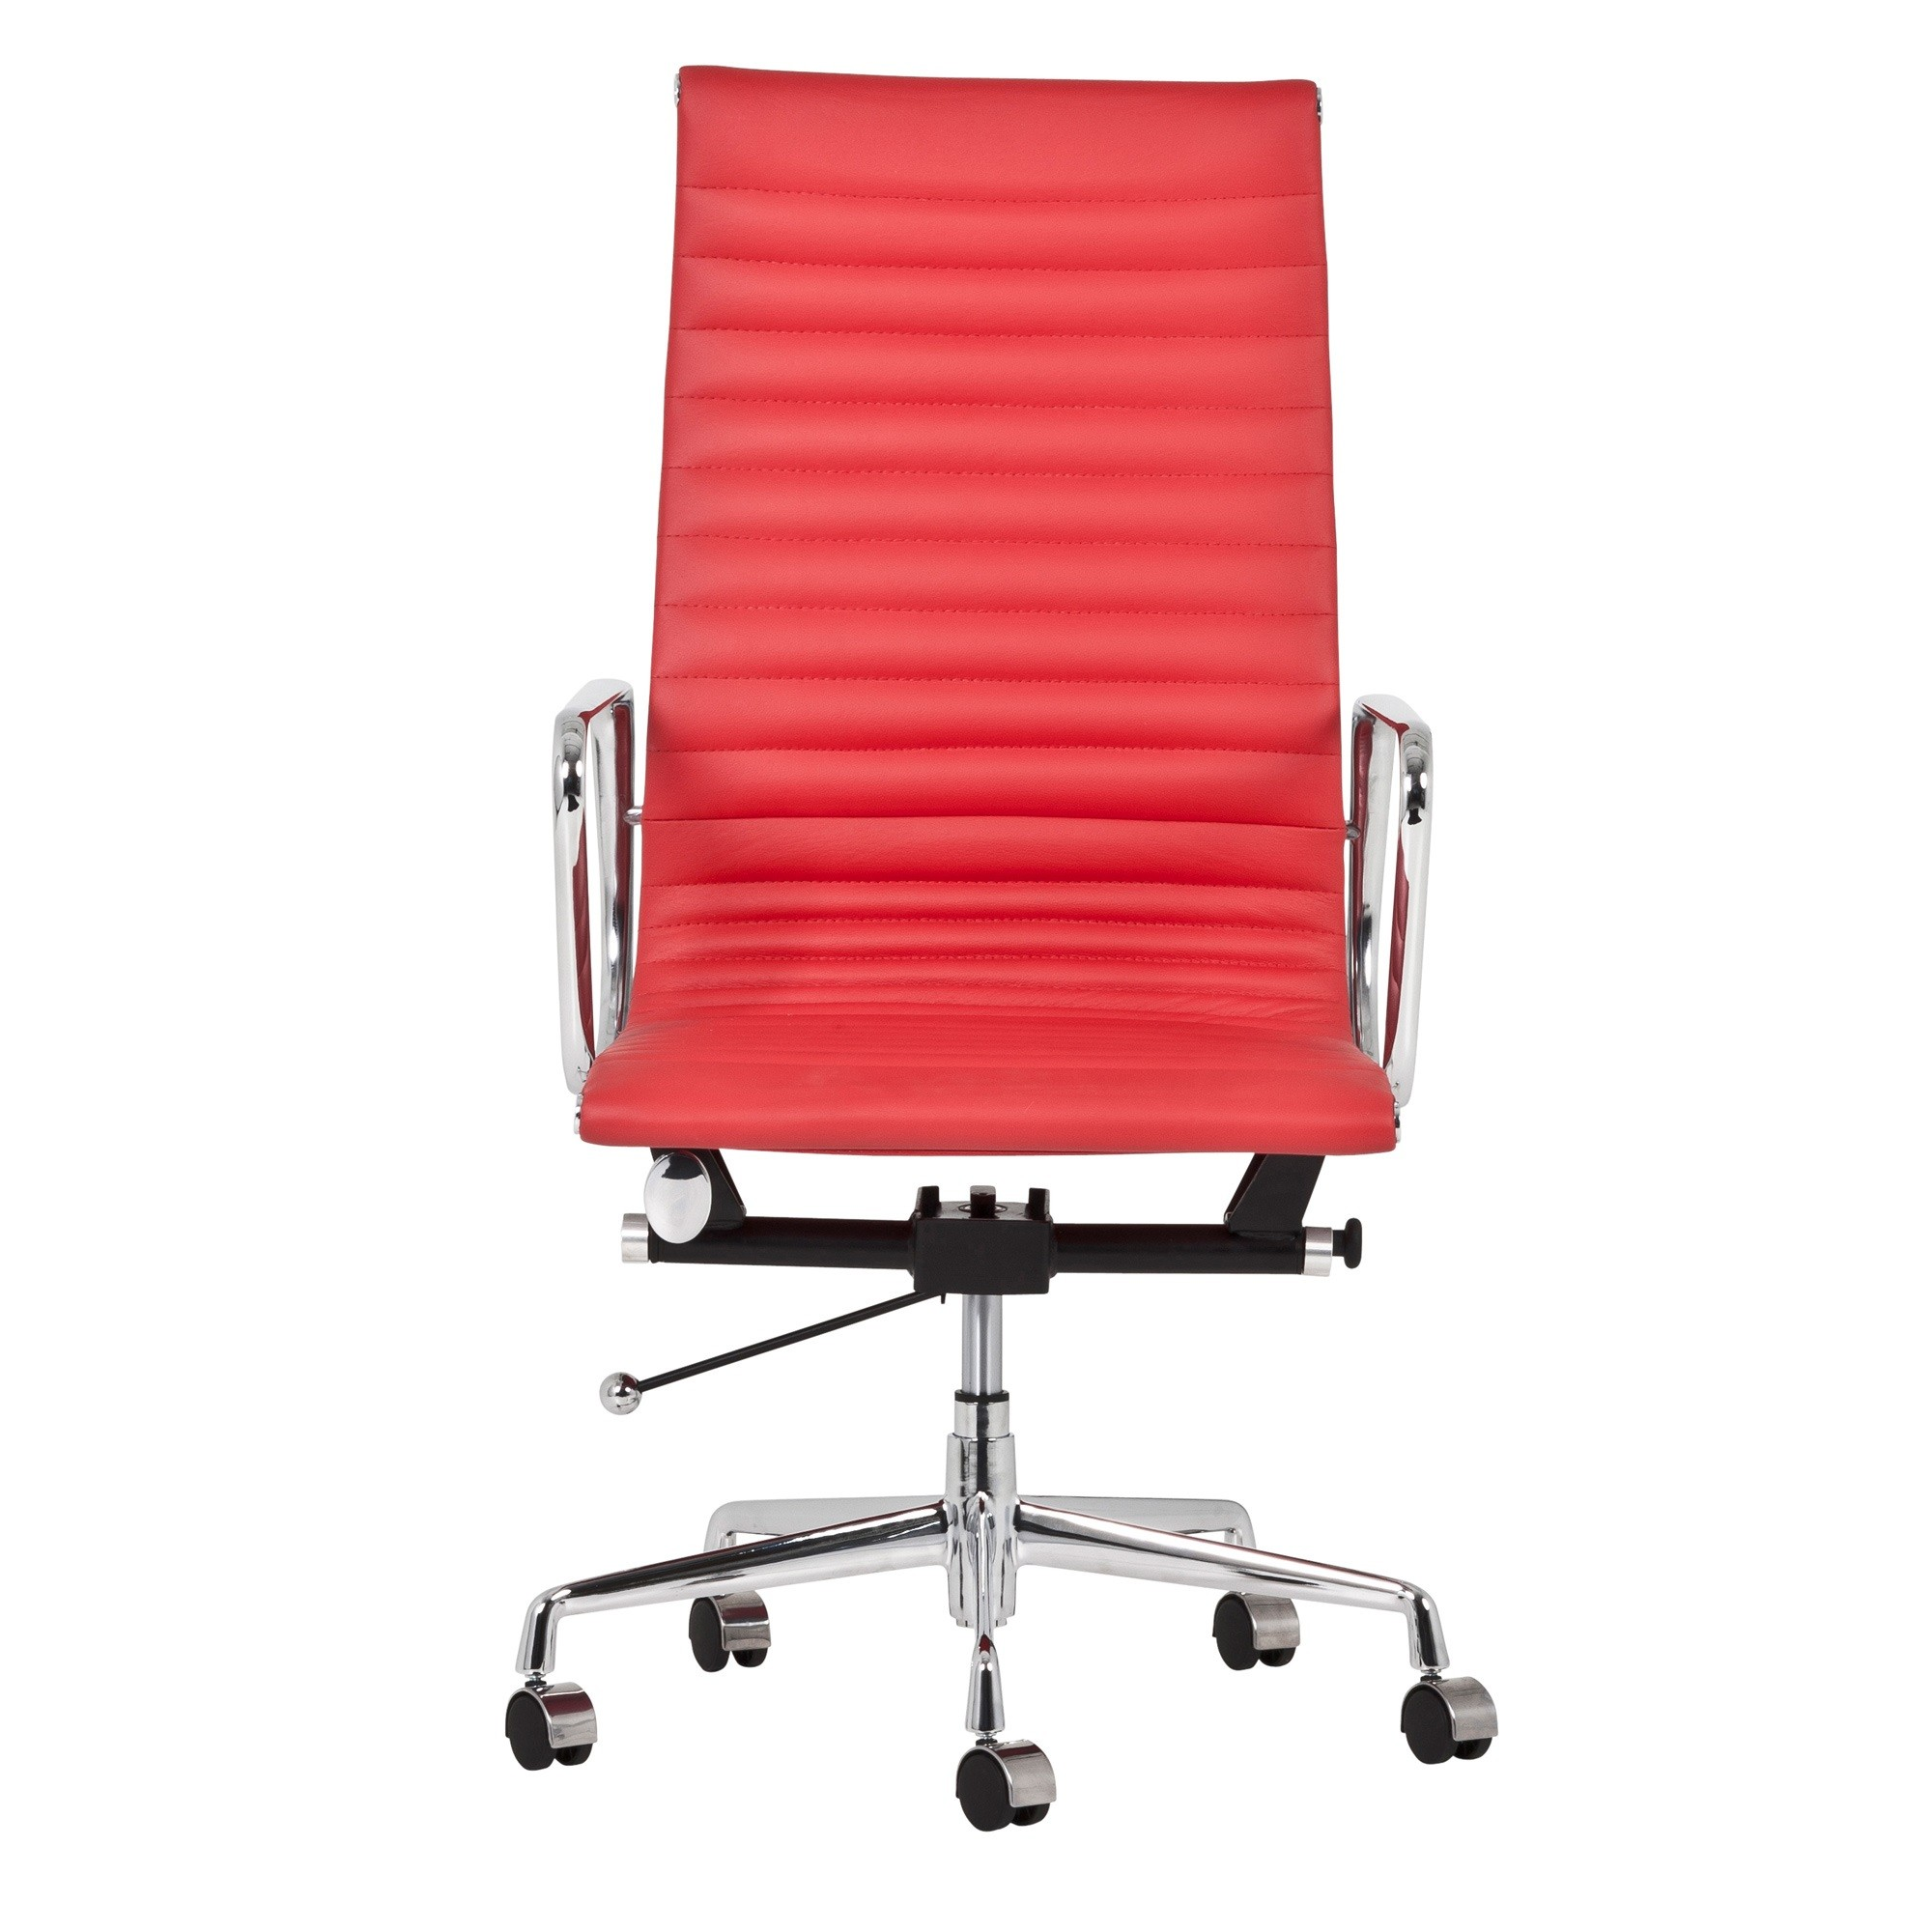 New Eames Replica High Back Management Office Chair Ebay